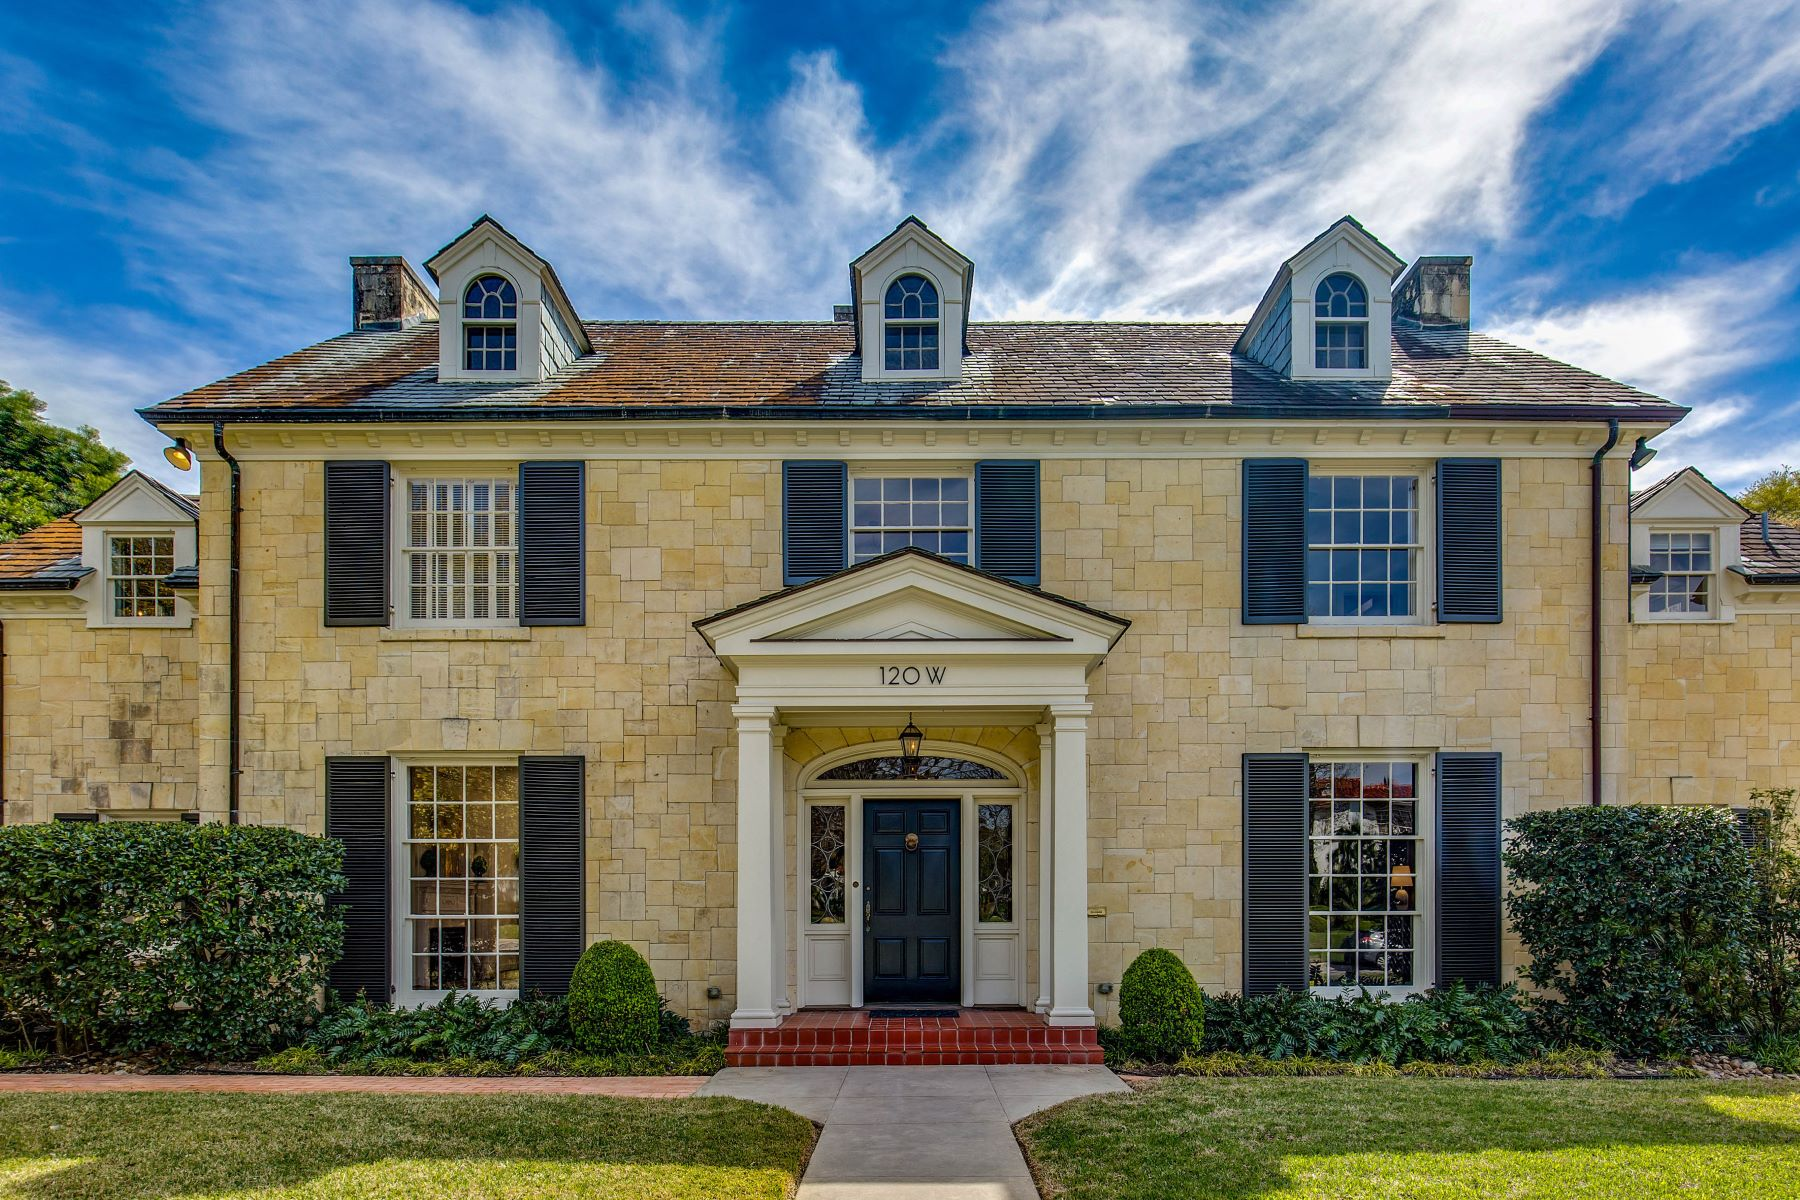 Single Family Home for Sale at Sophisticated Home in the Heart of Monte Vista 120 West Lynwood Avenue San Antonio, Texas 78212 United States